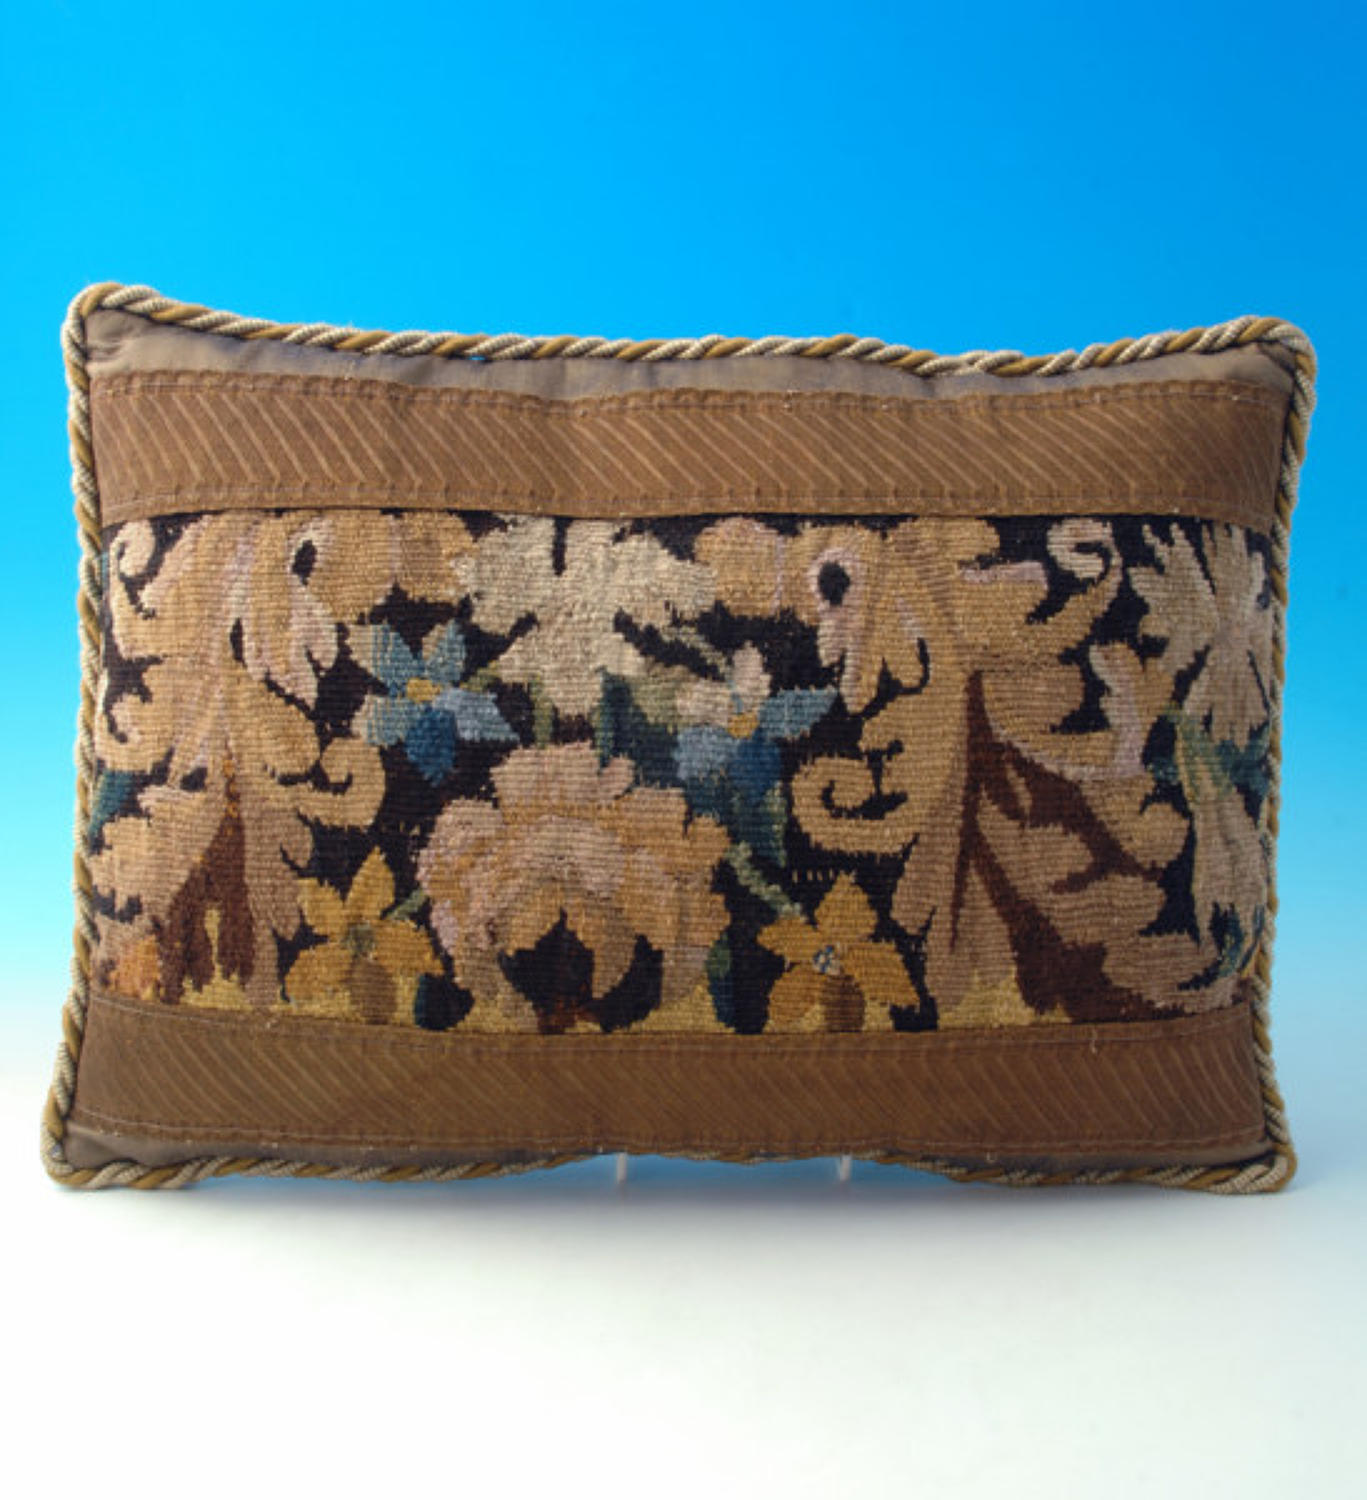 Cushion made from 17thc Tapestry Fragment. French C1601 - C1799